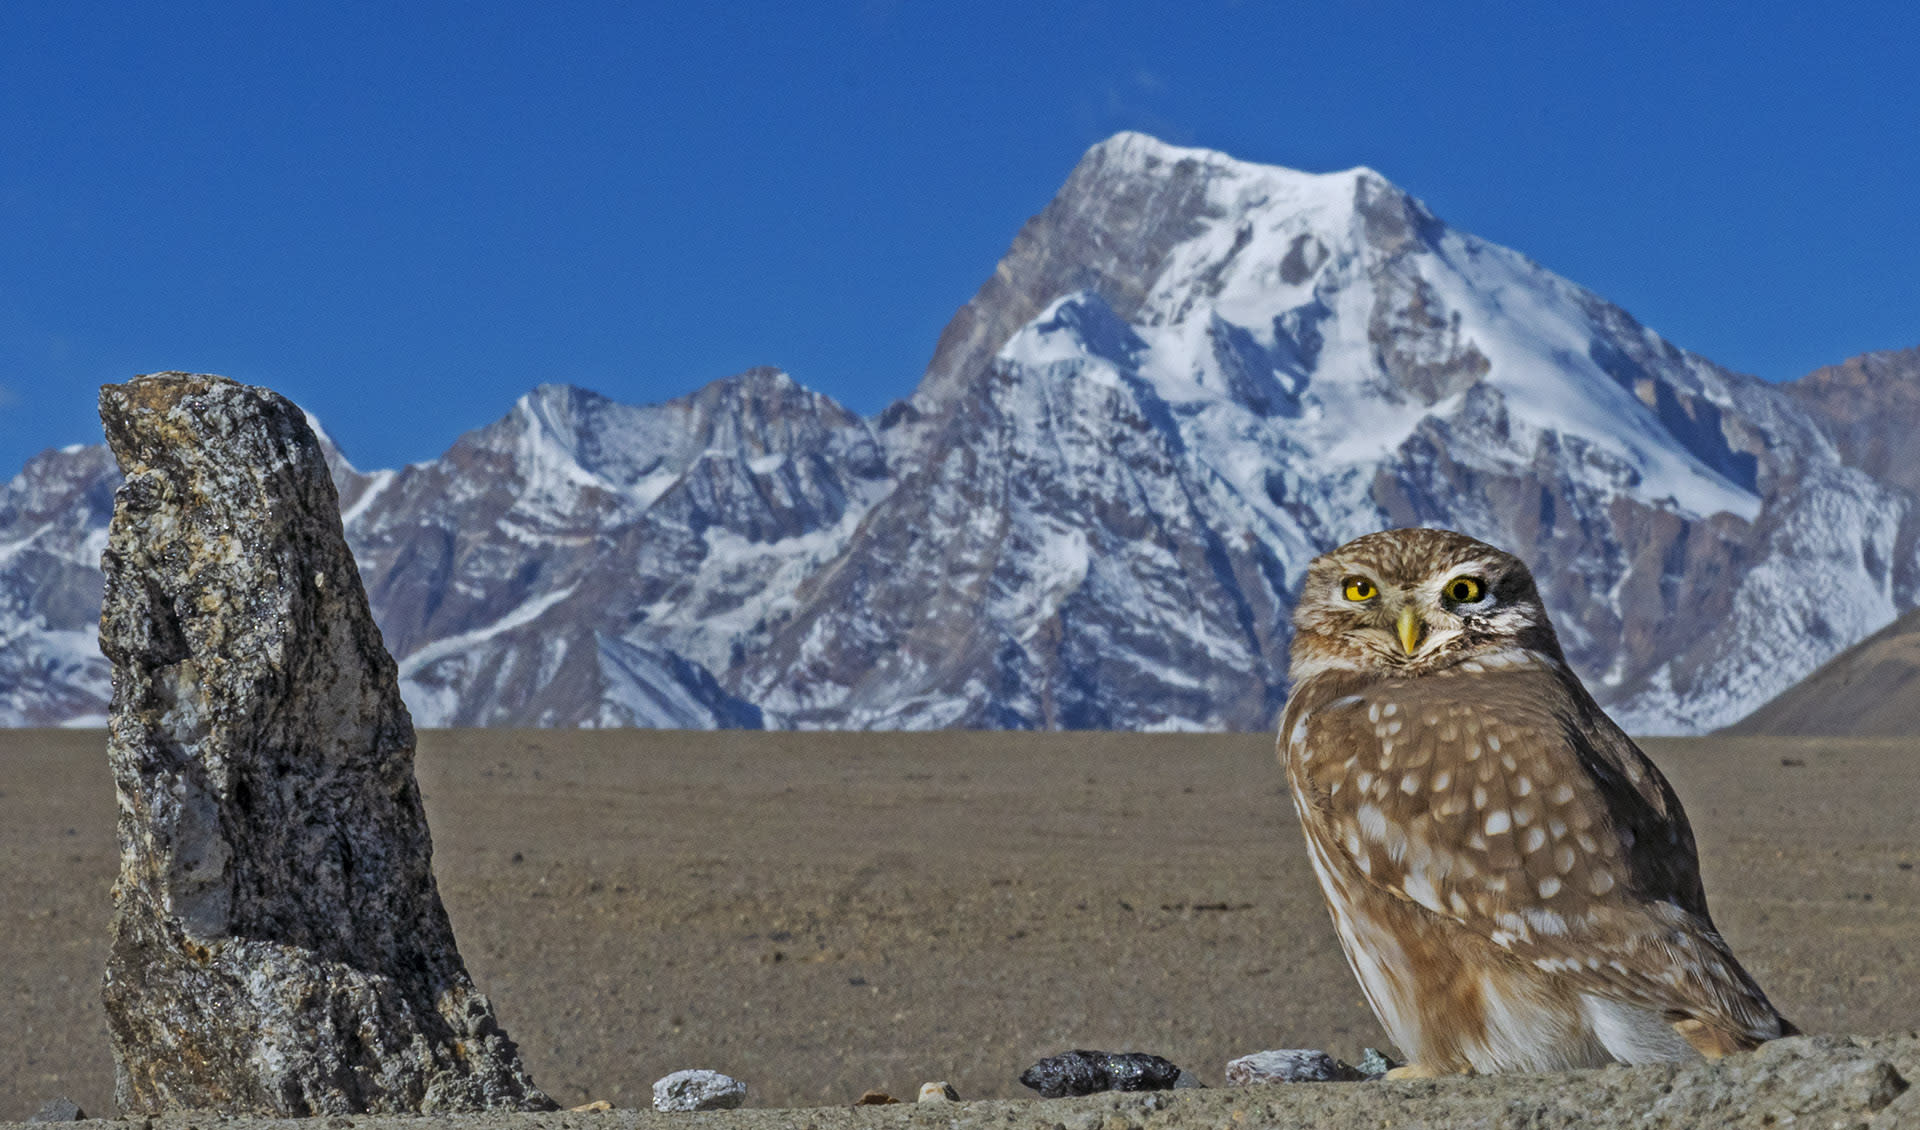 Within India, the little owl (Athene noctua) is found in the trans-Himalayas, on rocky outcrops within open areas. This small, diurnal bird, pictured here in Sikkim, likes worms and beetles, and is often seen on the ground.